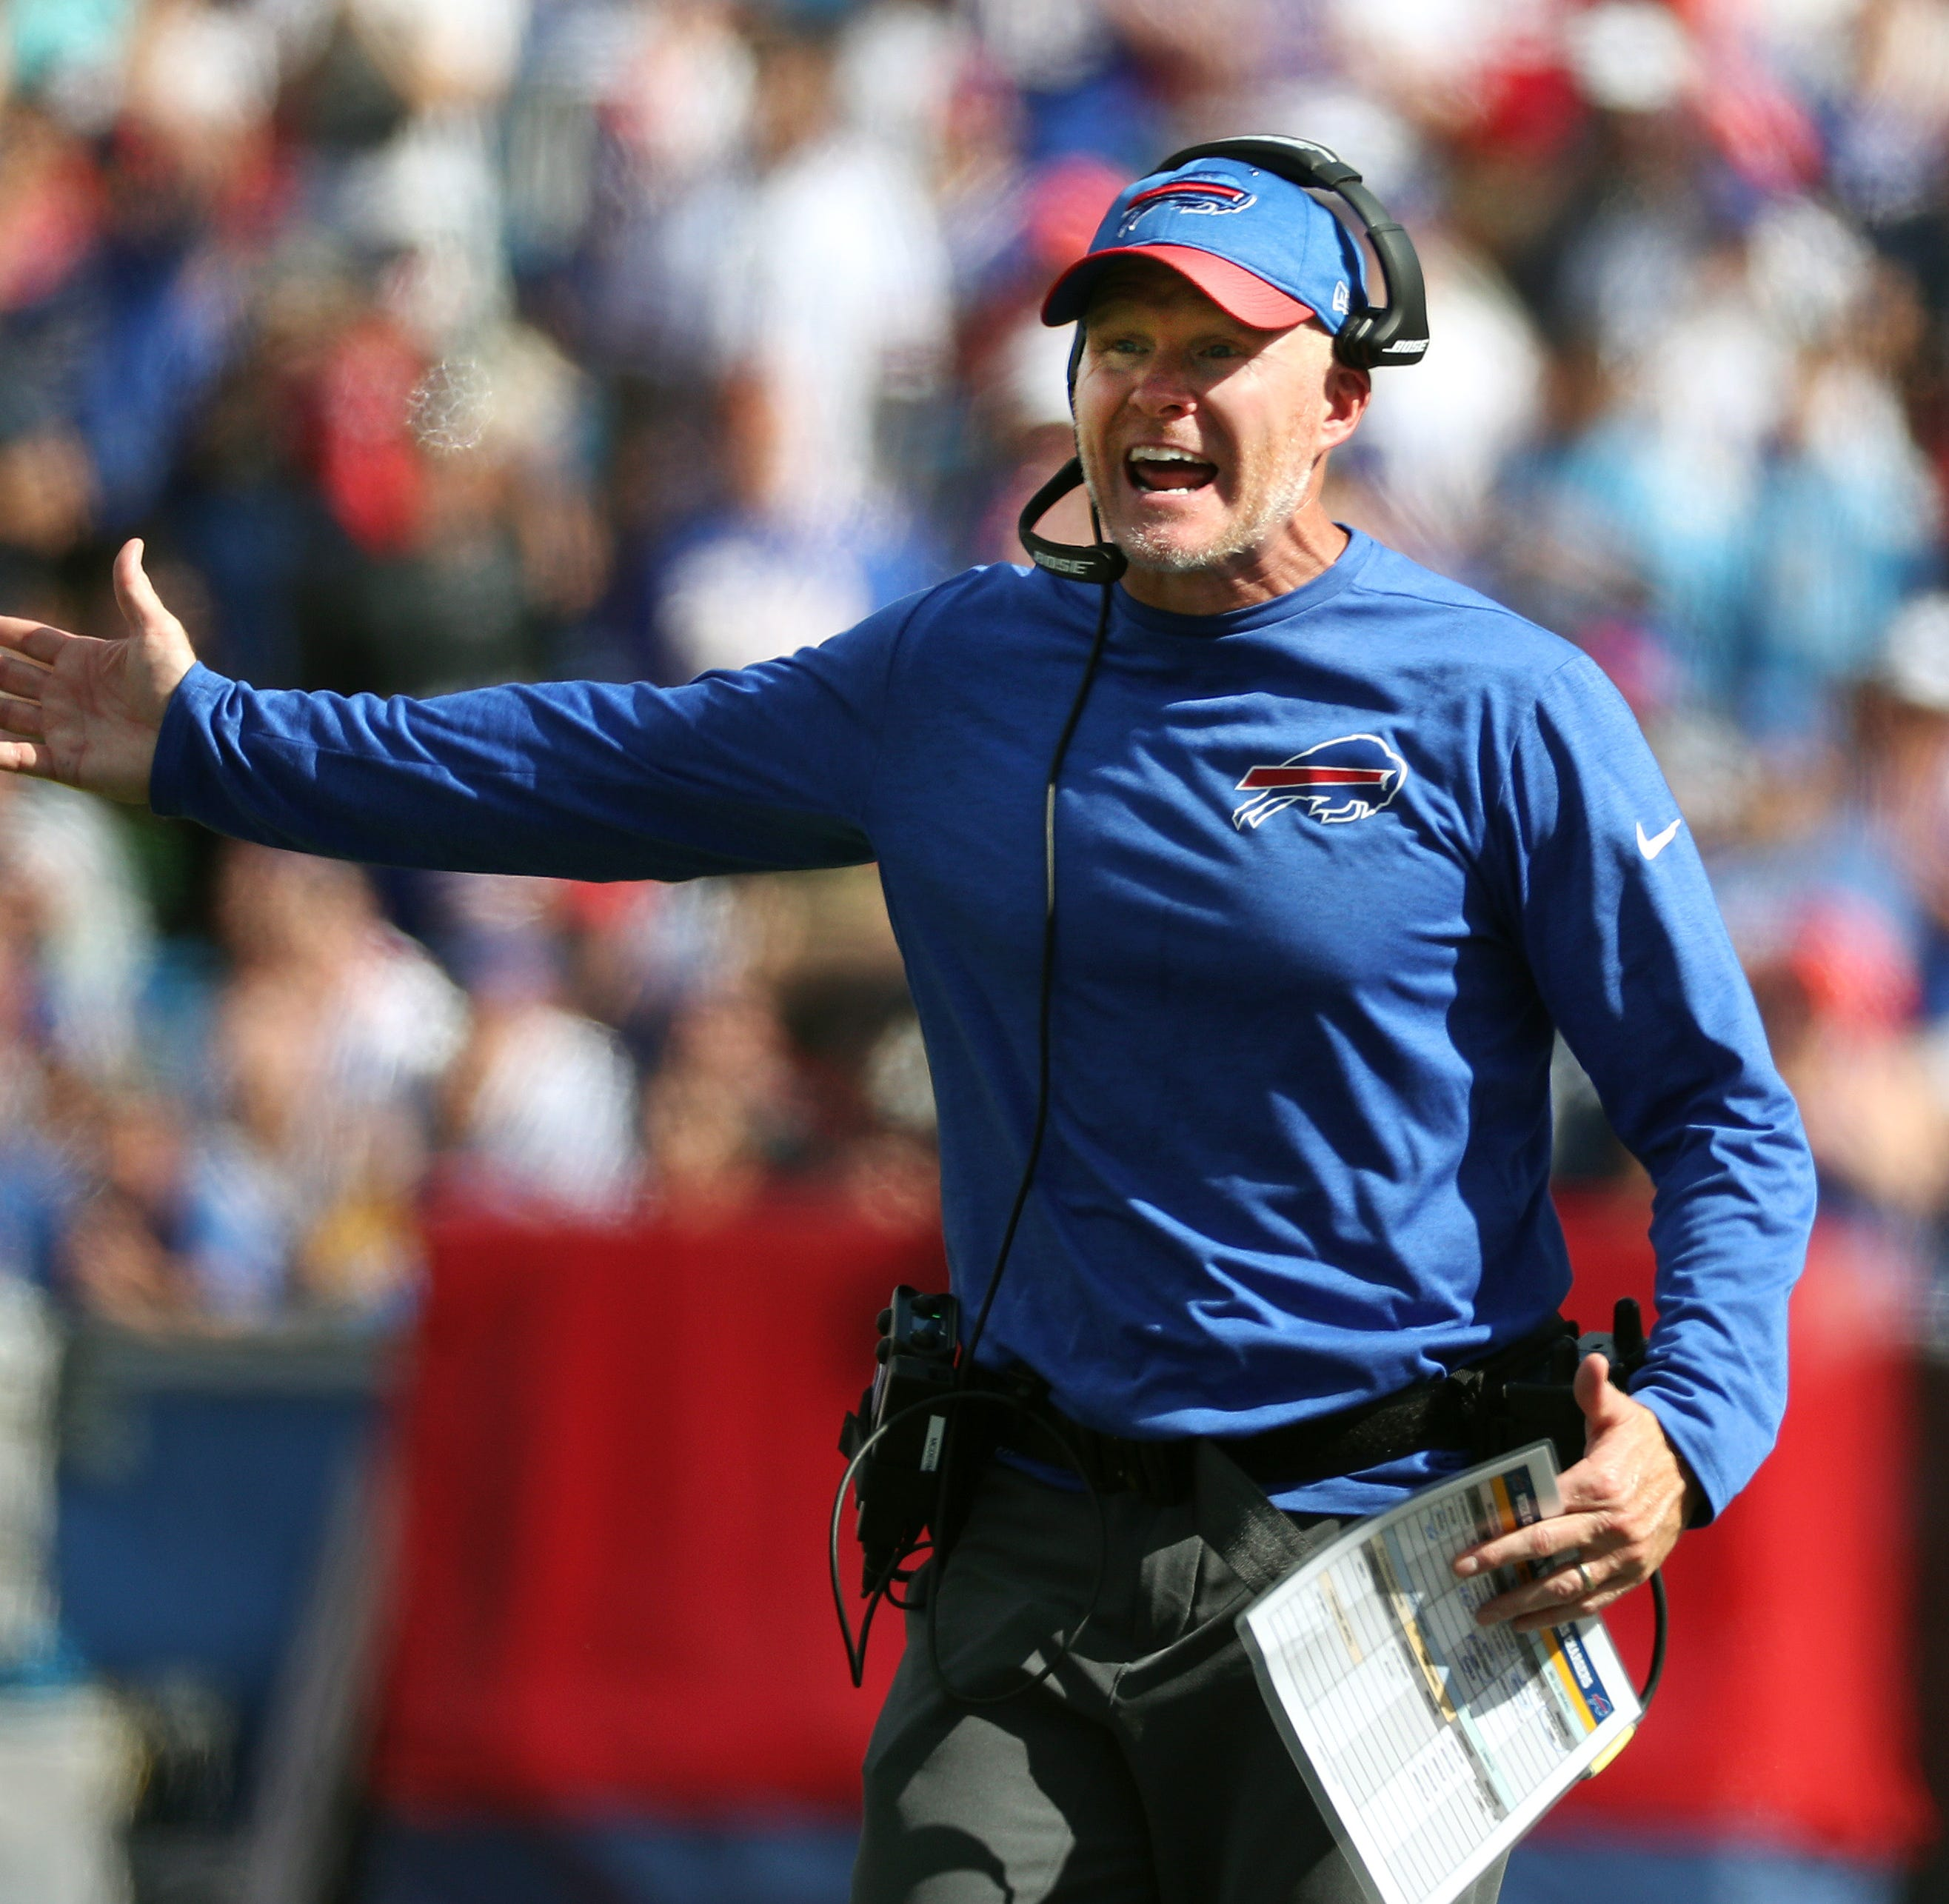 After just two games, Buffalo Bills are back to being an NFL doormat